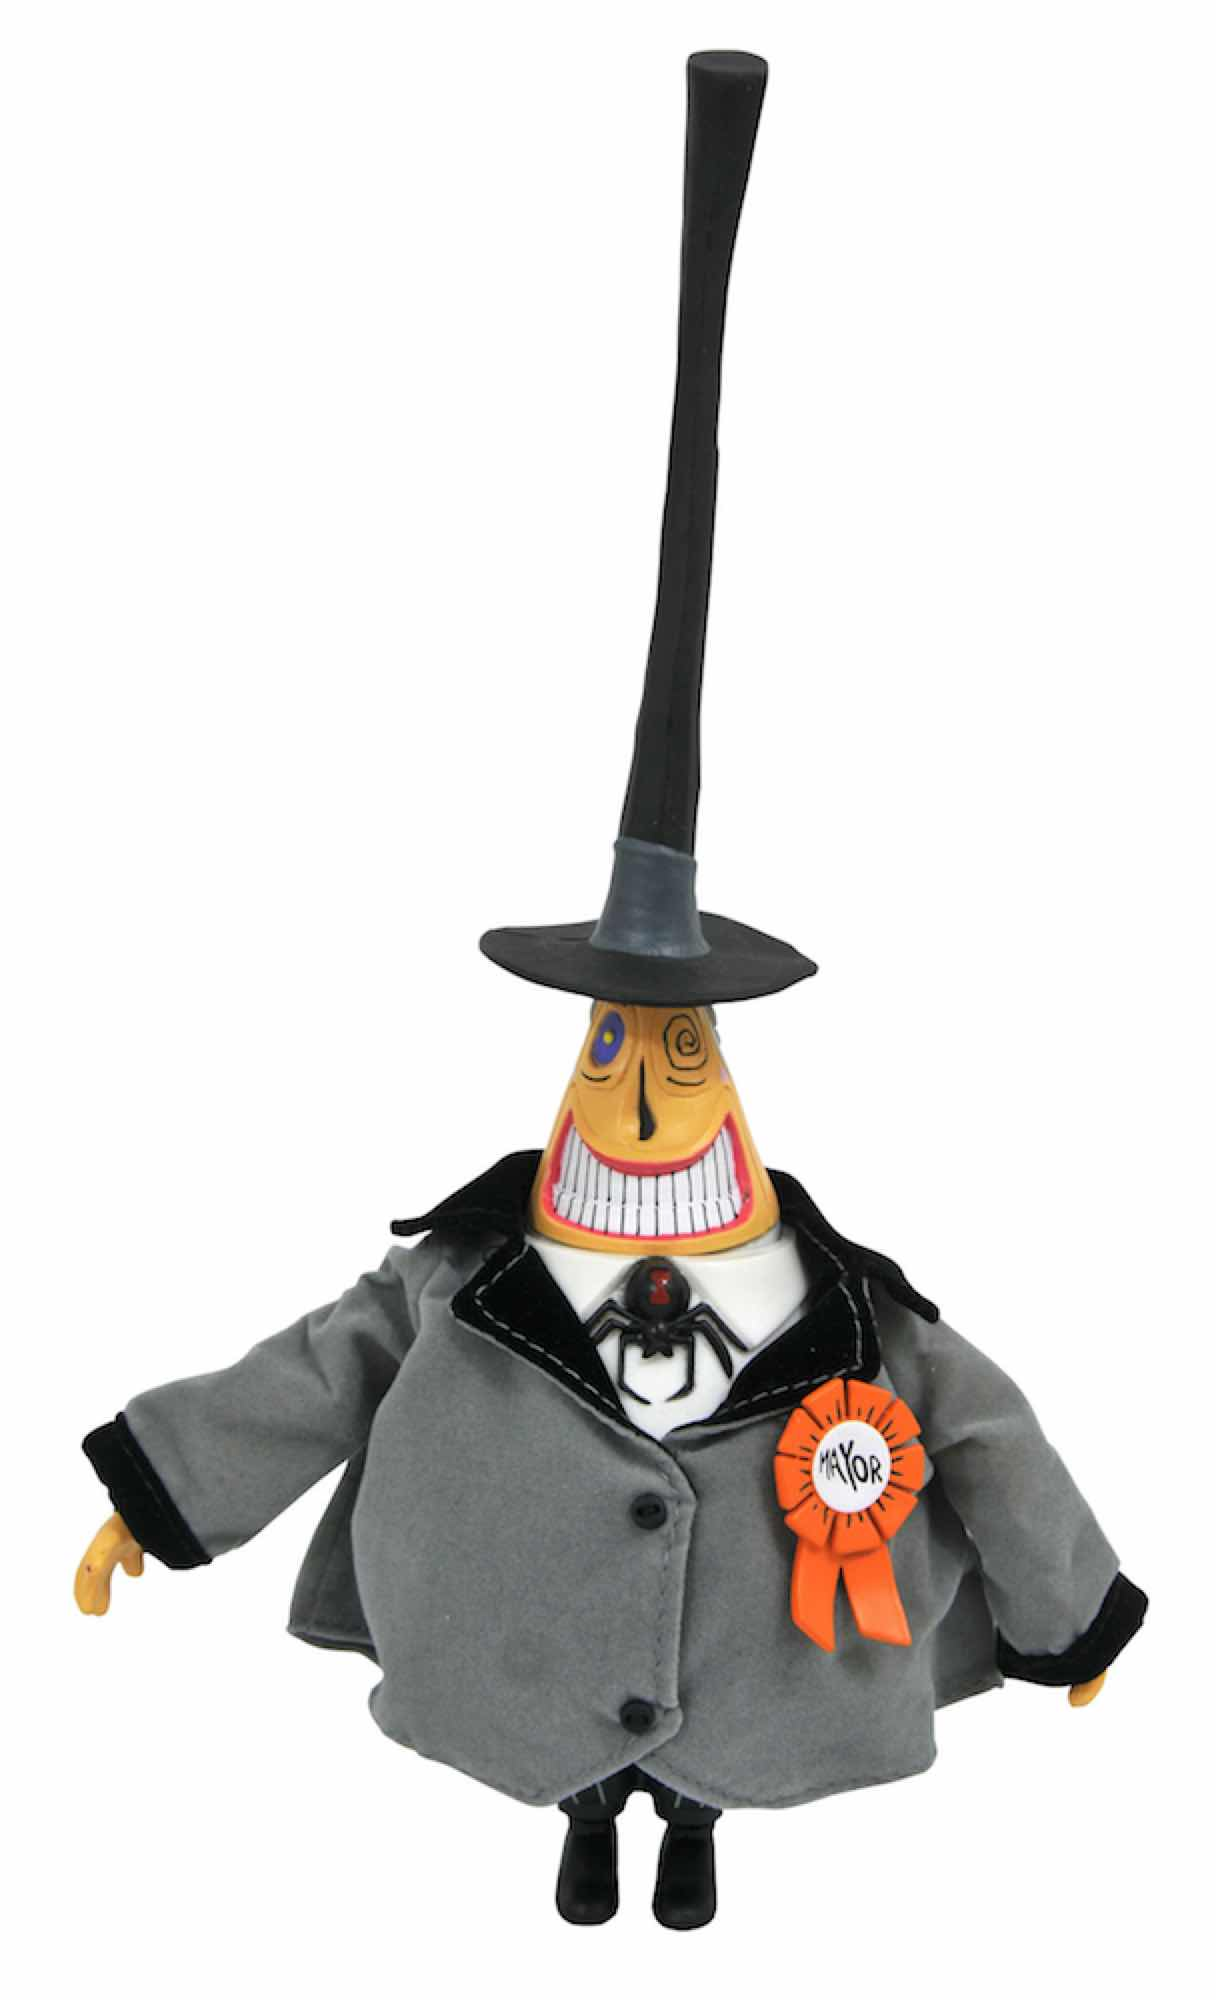 THE MAYOR FIGURA 25 CM ACTION FIGURE NIGHTMARE BEFORE CHRISTMAS SILVER ANNIVERSARY